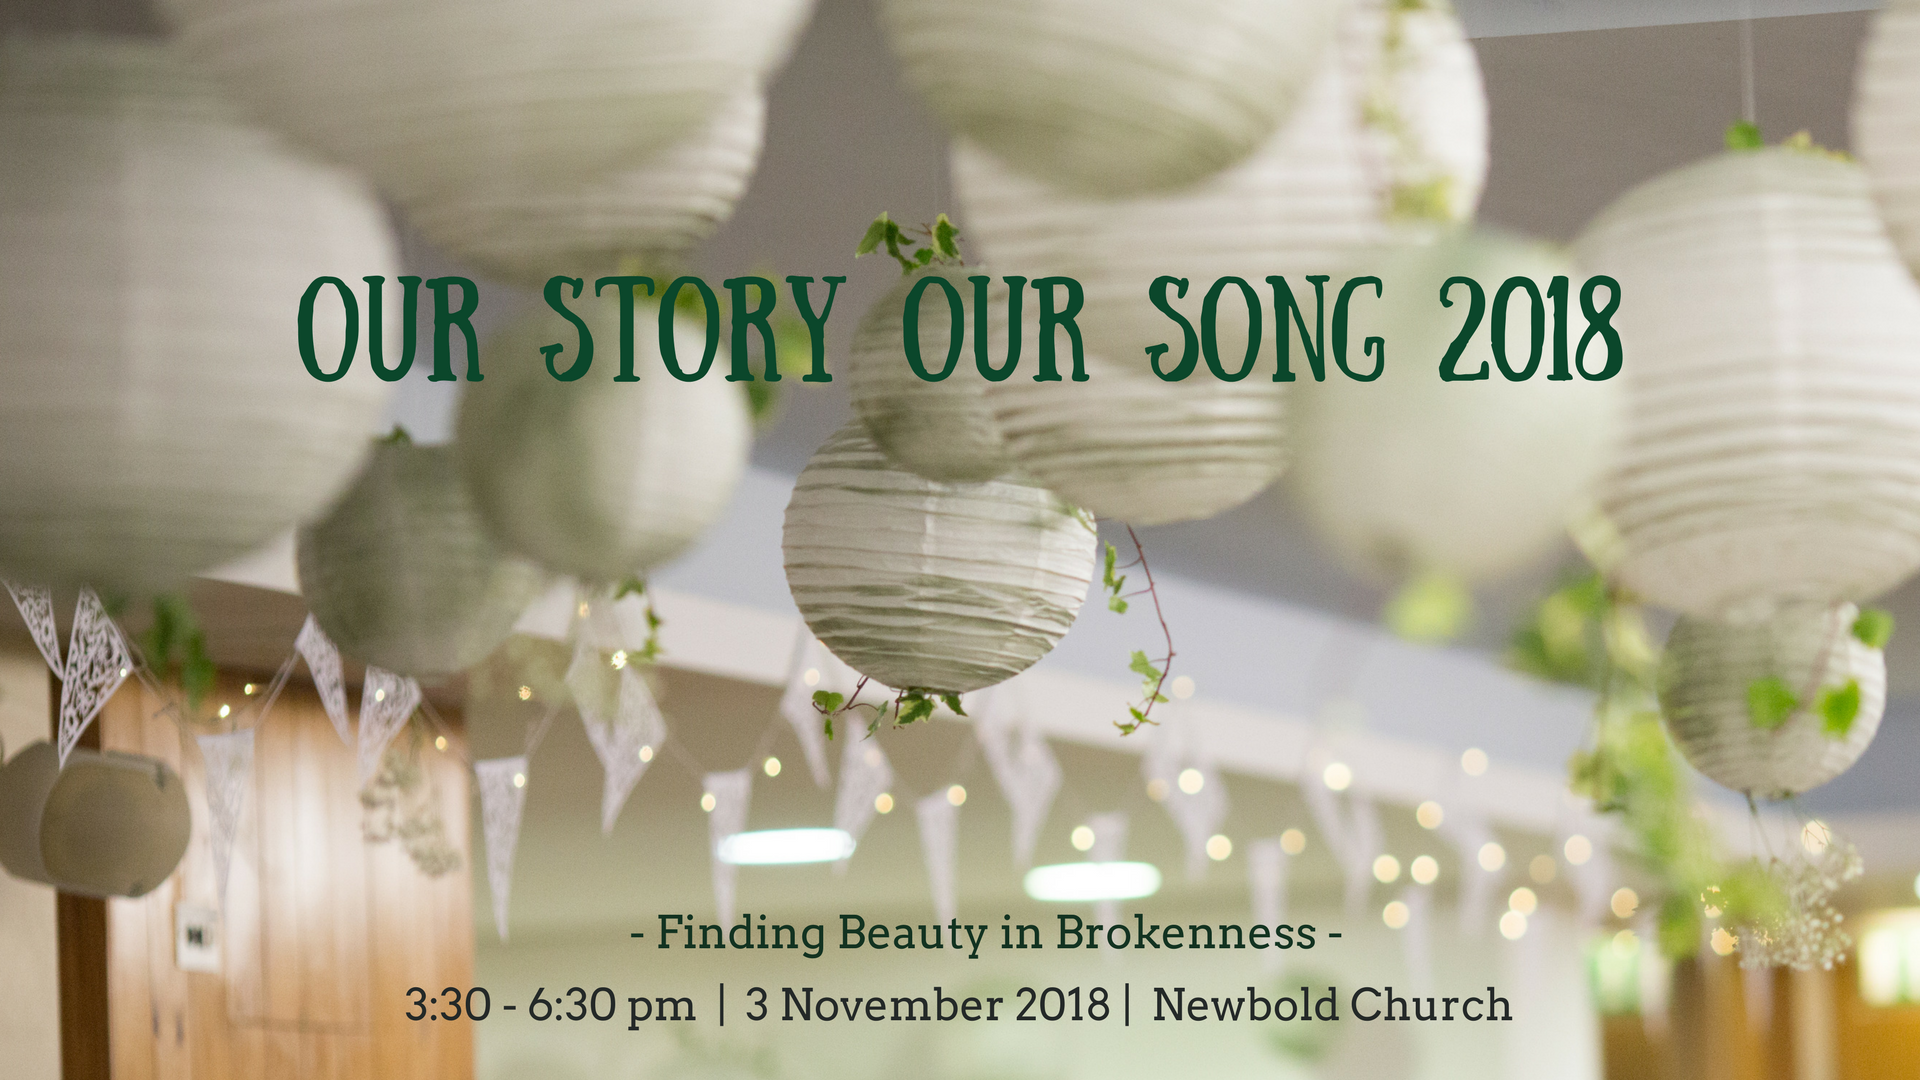 ourstoryoursong2018_eventbrite.png